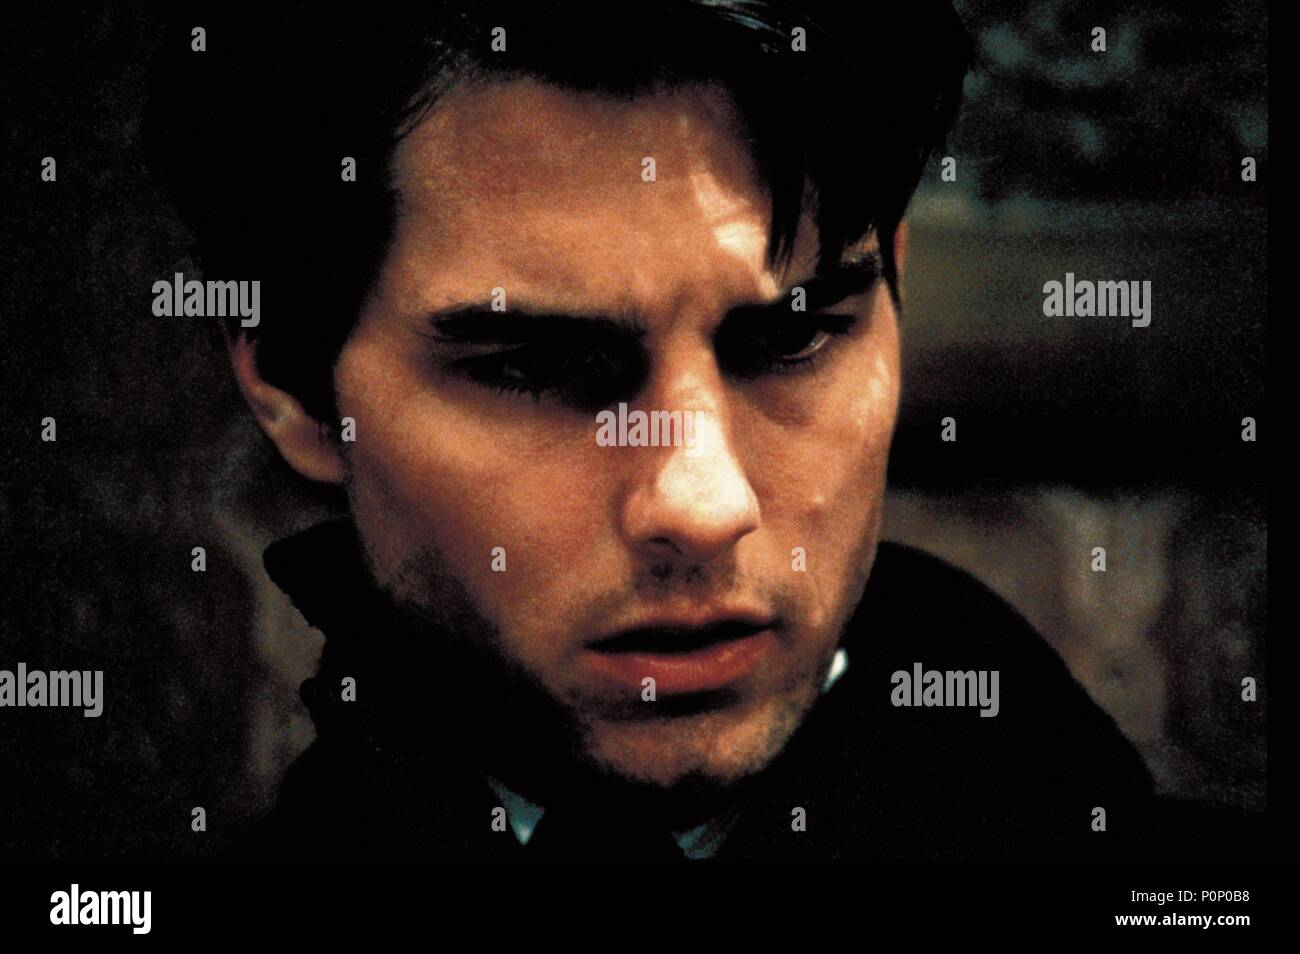 Original Film Title: EYES WIDE SHUT.  English Title: EYES WIDE SHUT.  Film Director: STANLEY KUBRICK.  Year: 1999.  Stars: TOM CRUISE. Credit: WARNER BROS. PICTURES / Album - Stock Image